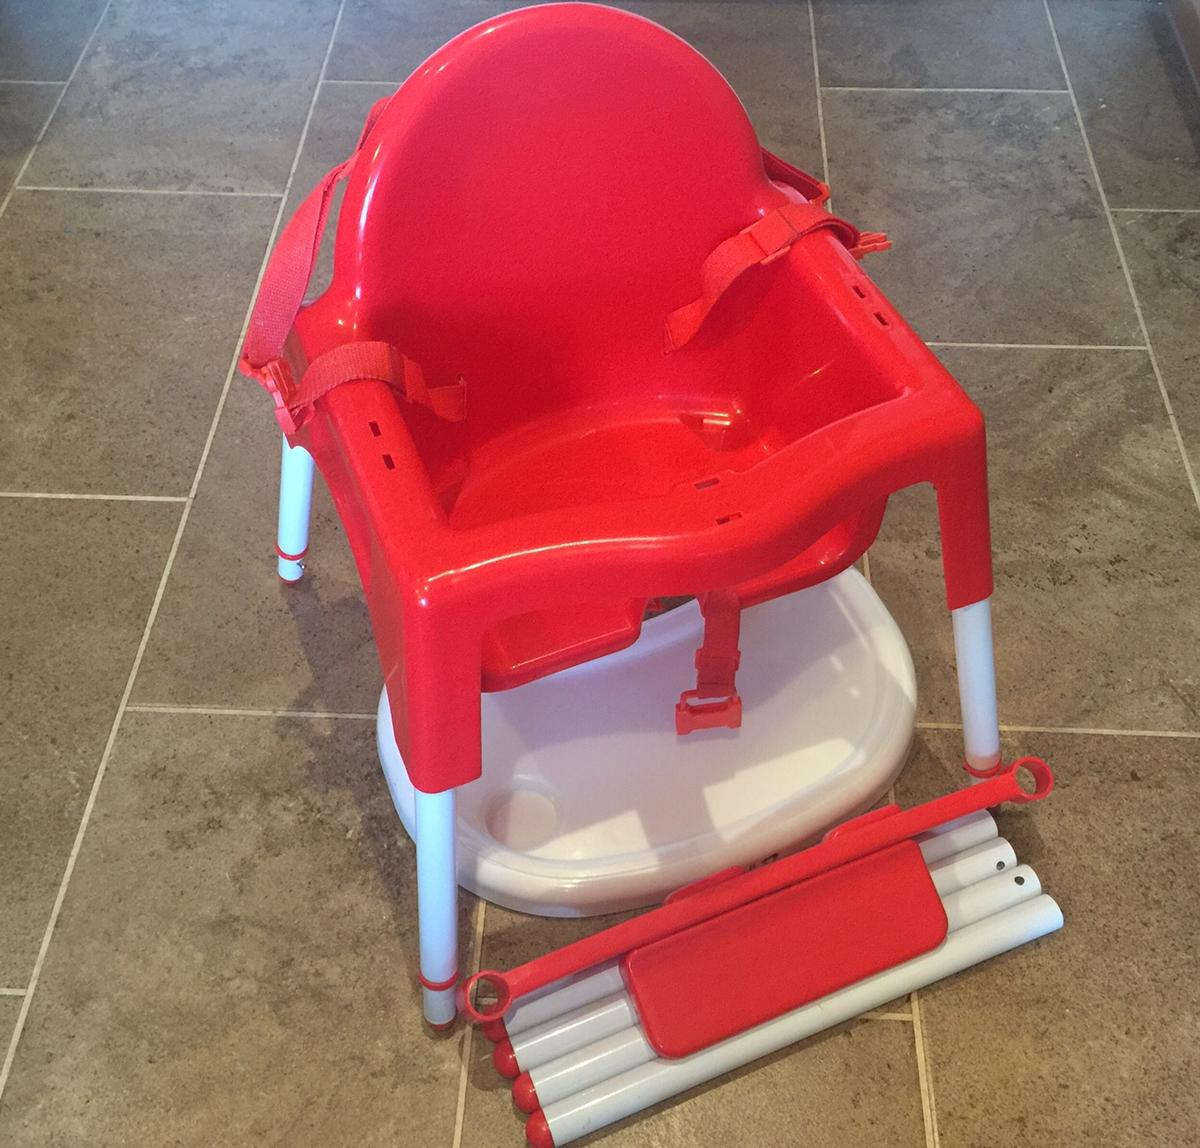 Baby Chairs Argos Cuggl Pickle Highchair Argos Red In Kt20 Banstead For